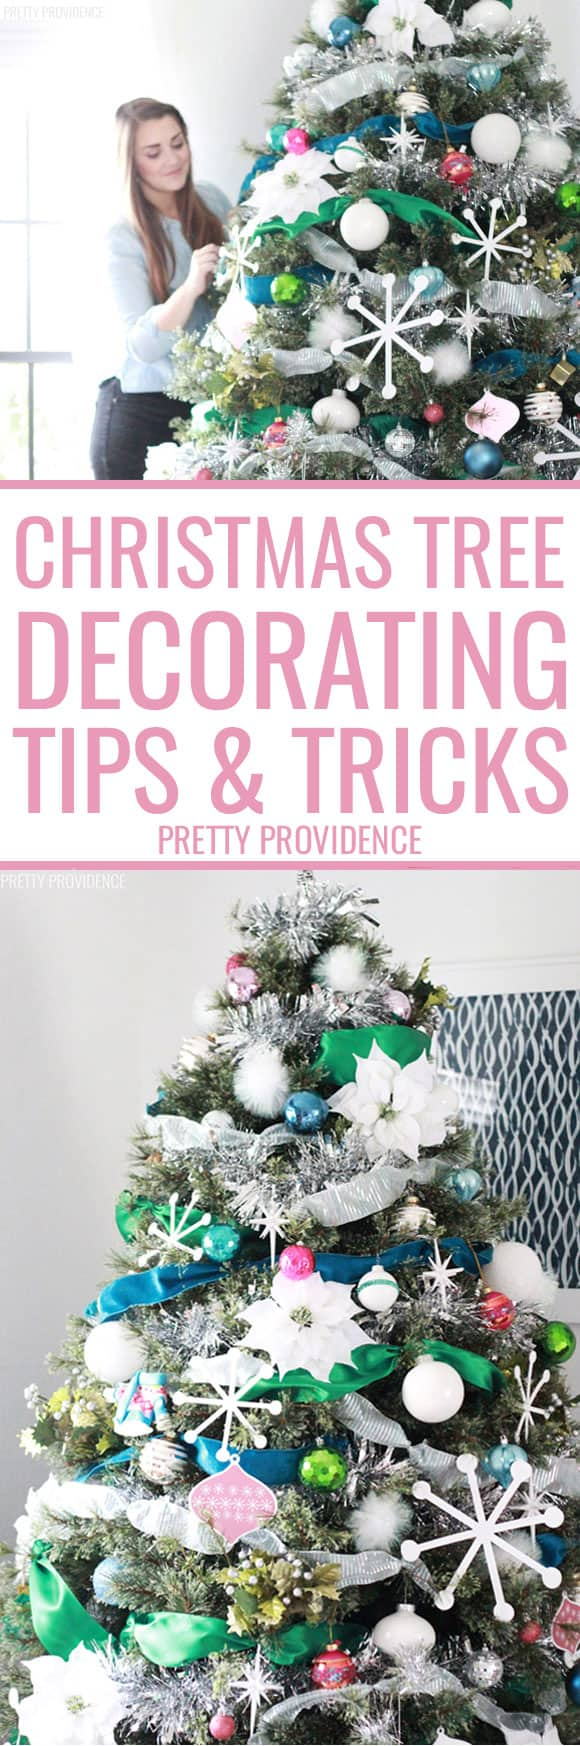 Tips and tricks for how to decorate a Christmas tree with ribbon, creating a toddler proof Christmas tree, and more! #christmas #christmastree #christmasdecor #christmastreeideas #toddlerproof #babyproof #christmasdecorations #christmastrees #ornaments #homemadechristmas